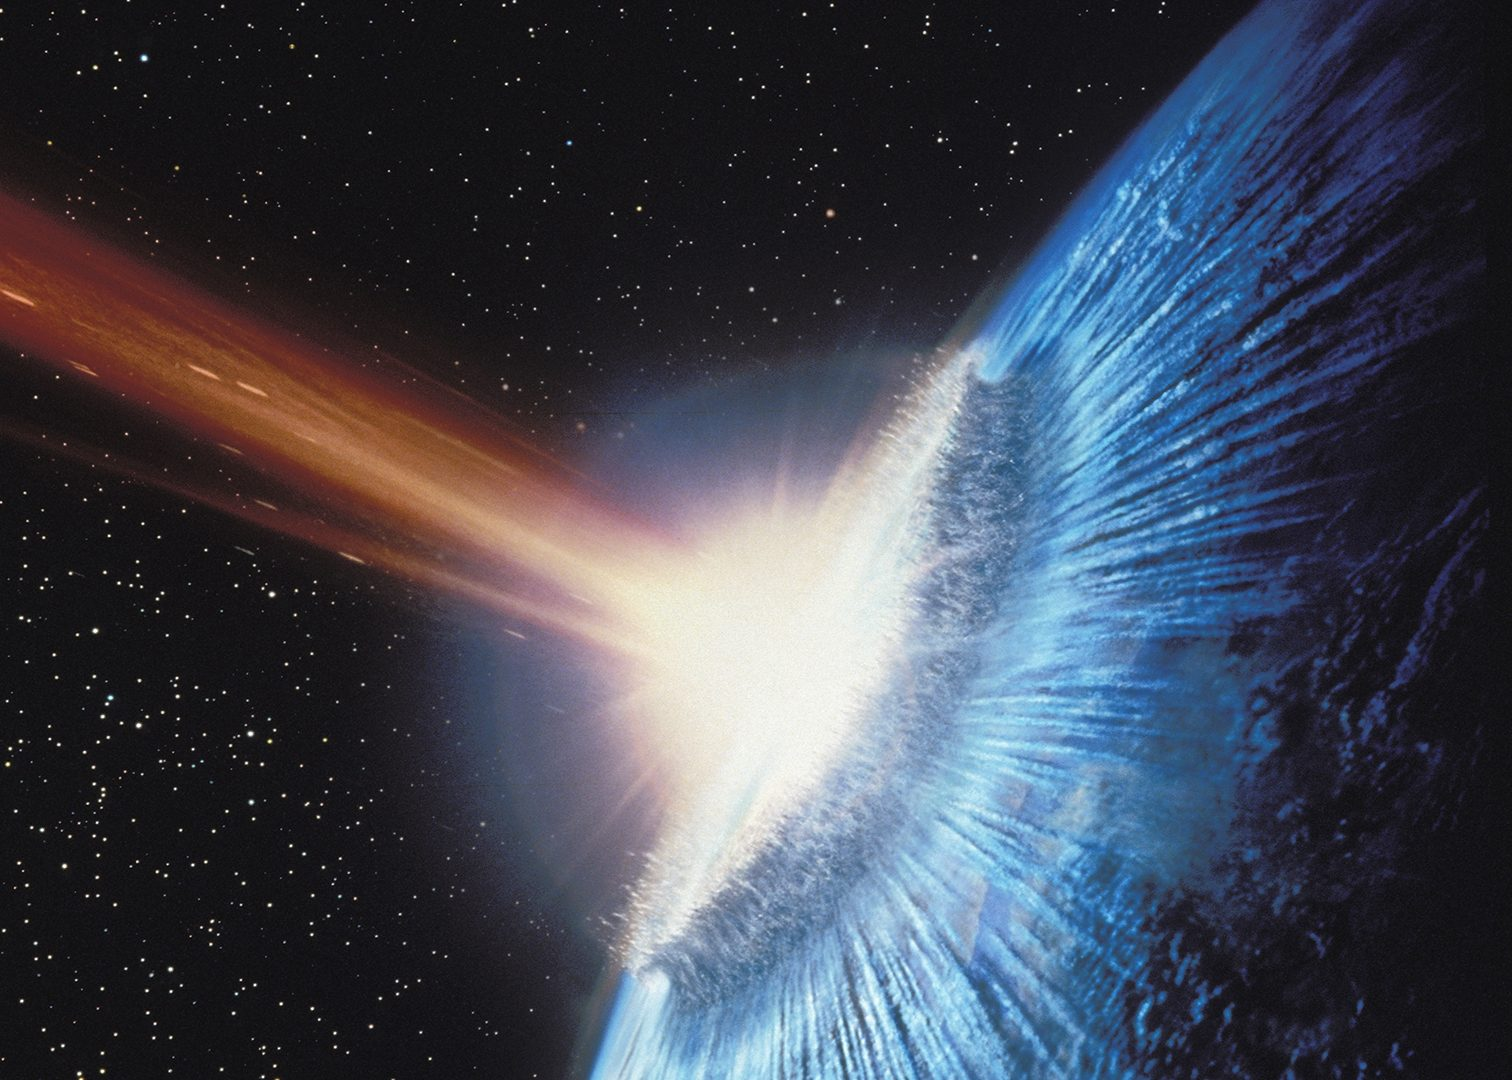 deepimpact 1998 photo hero e1607939217196 20 Famous Films That Had Almost Identical 'Twins'